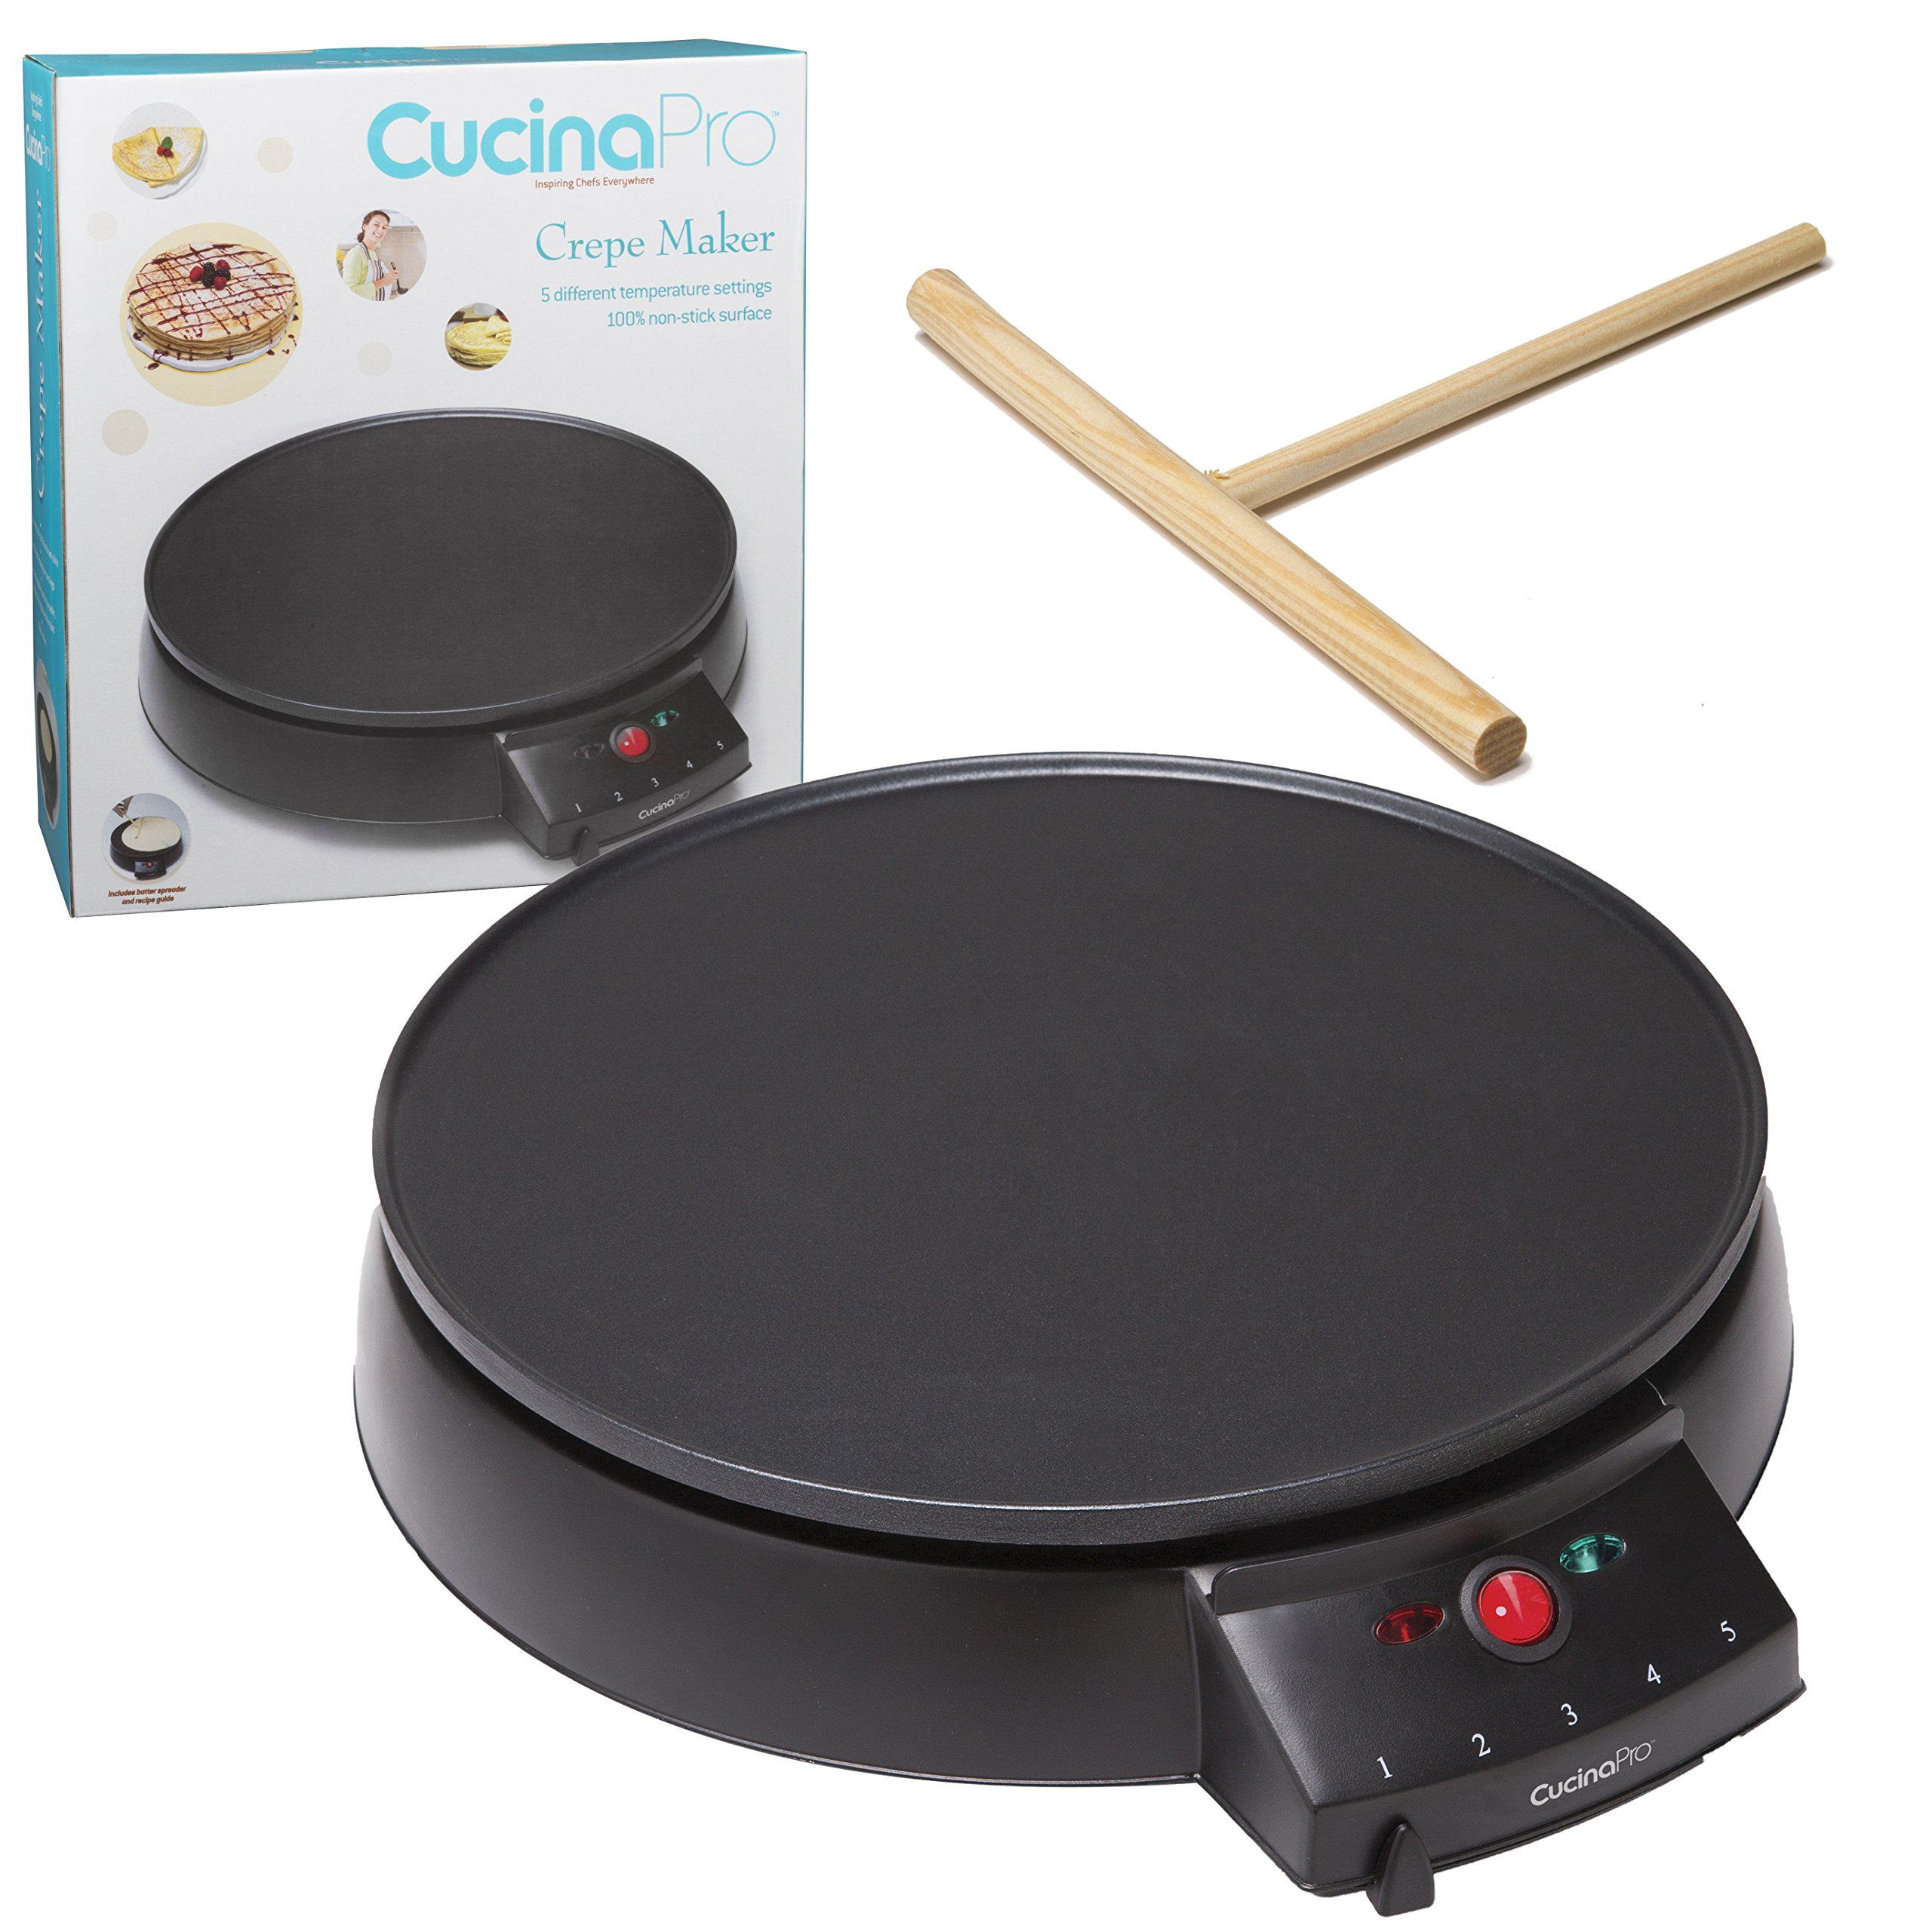 Crepe Maker and Non-Stick 12'' Griddle- Electric Crepe Pan with Spreader and Recipes Included- Also use for Blintzes, Eggs, Pancakes and More